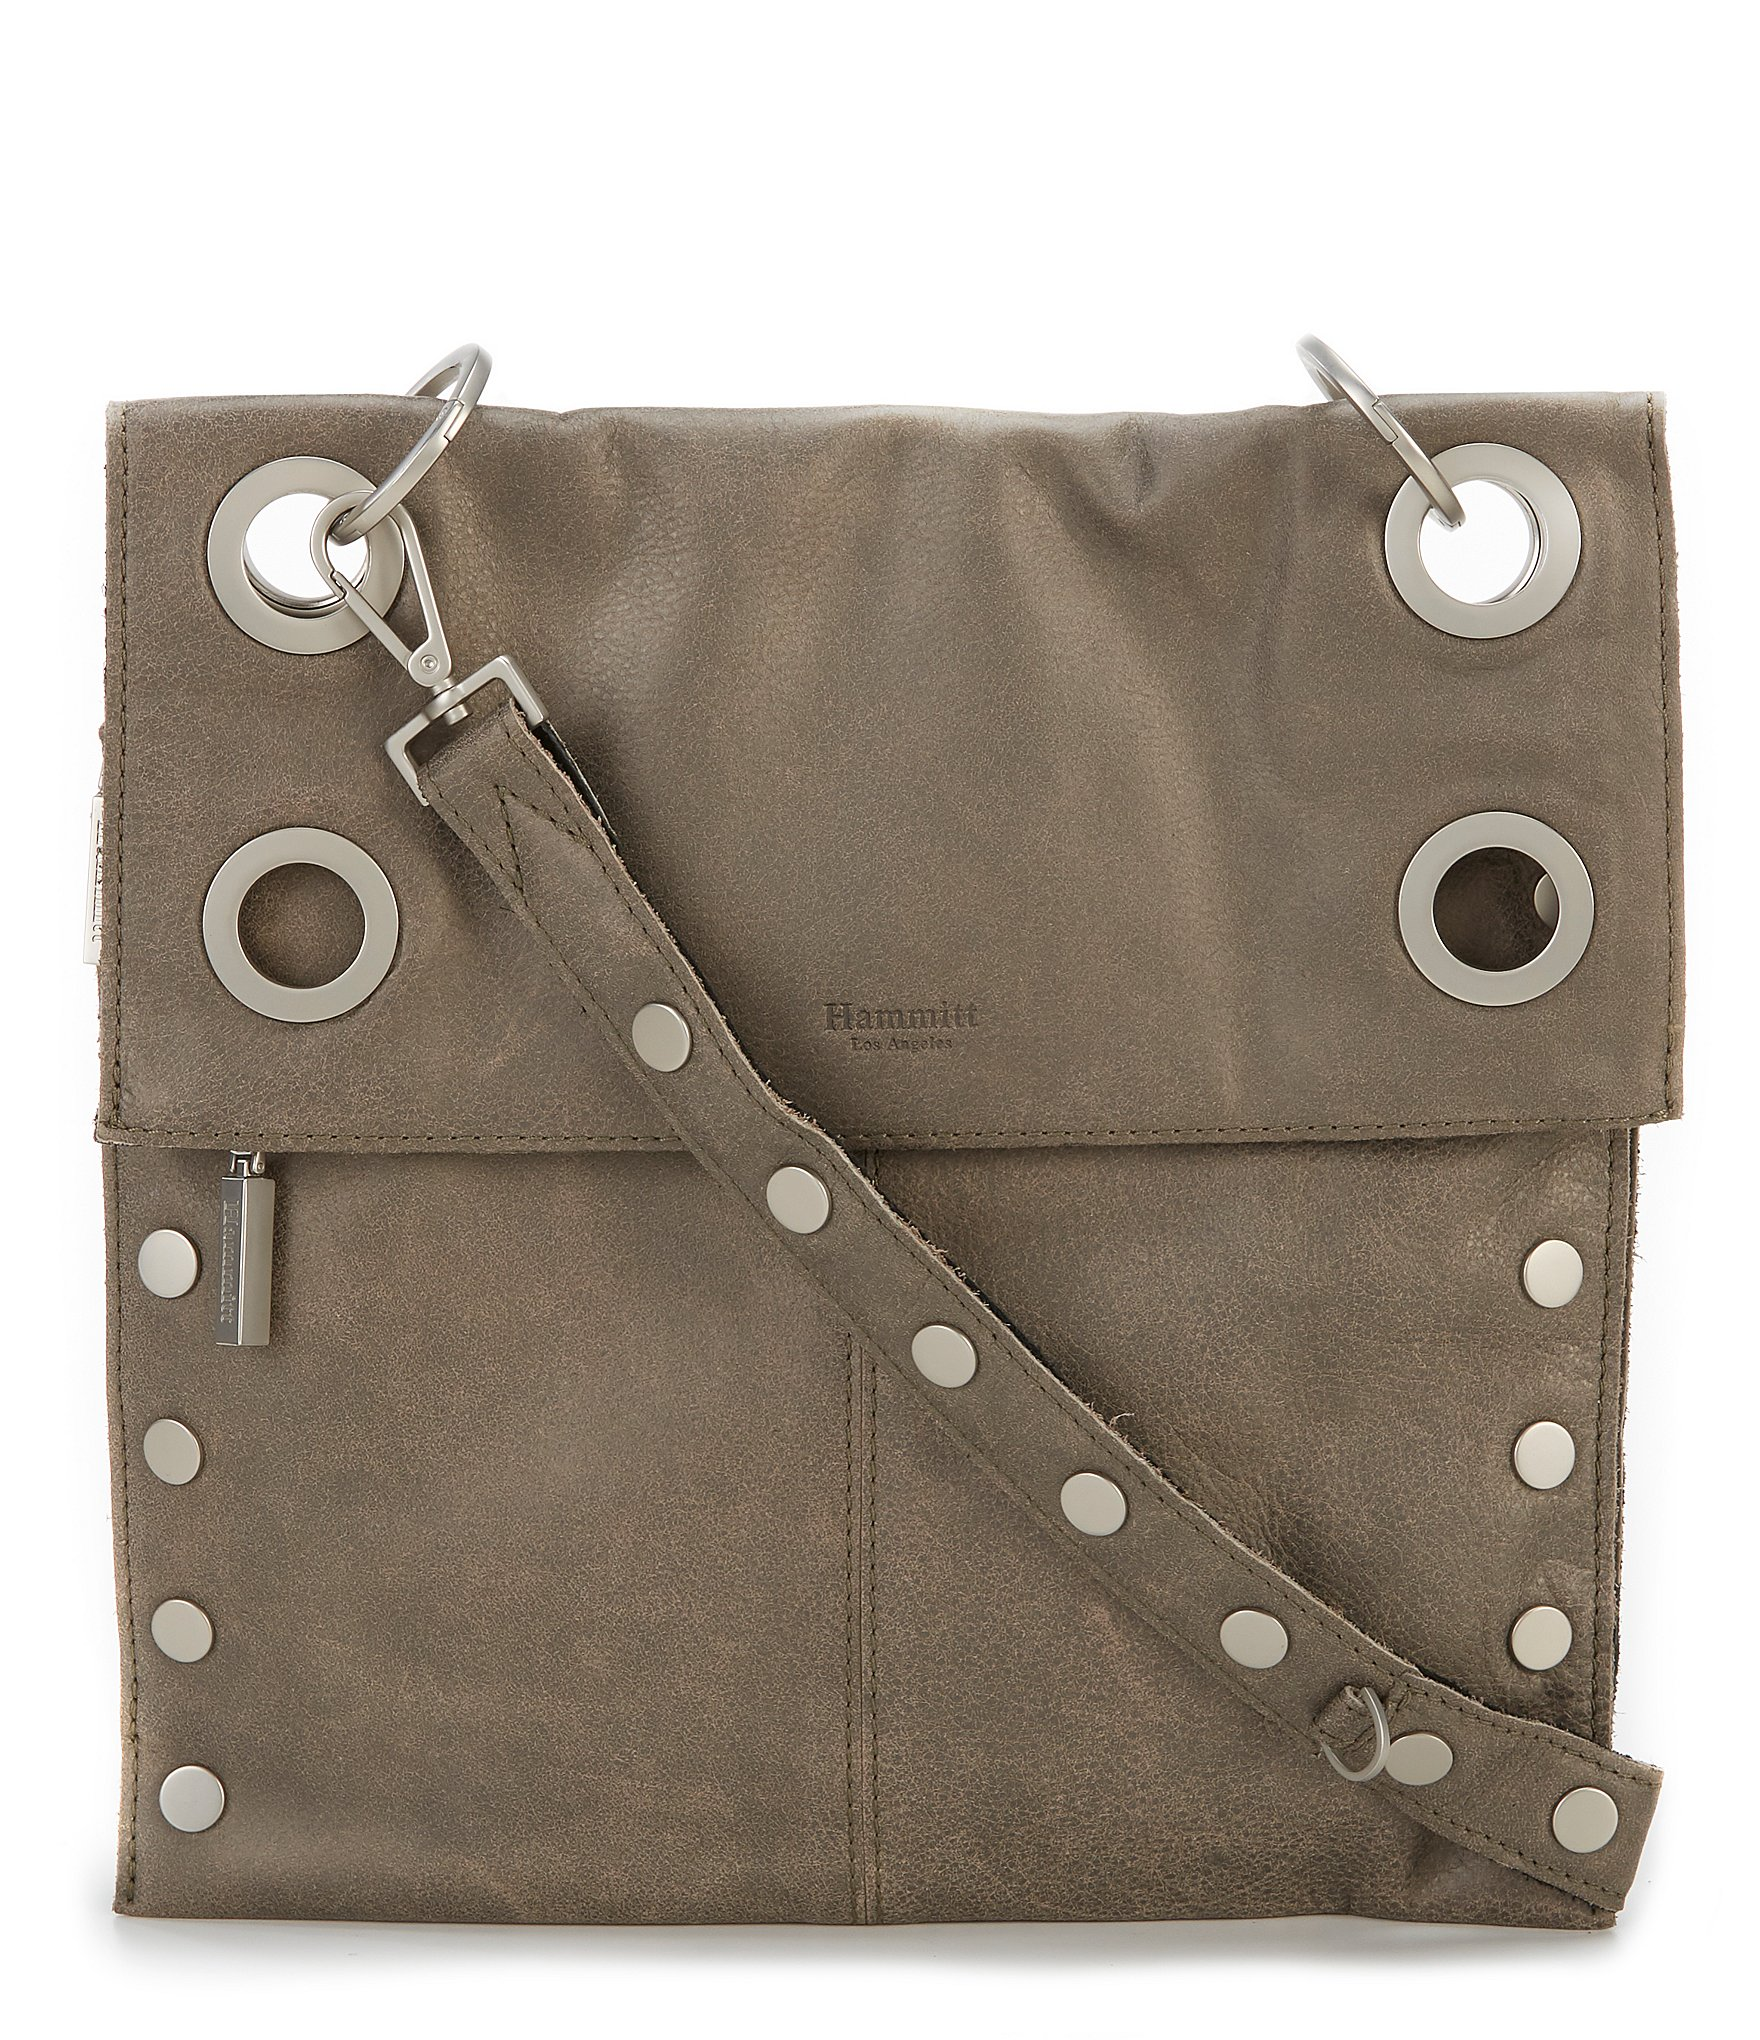 Montana Reversible Zip Cross Body Bag by Hammitt